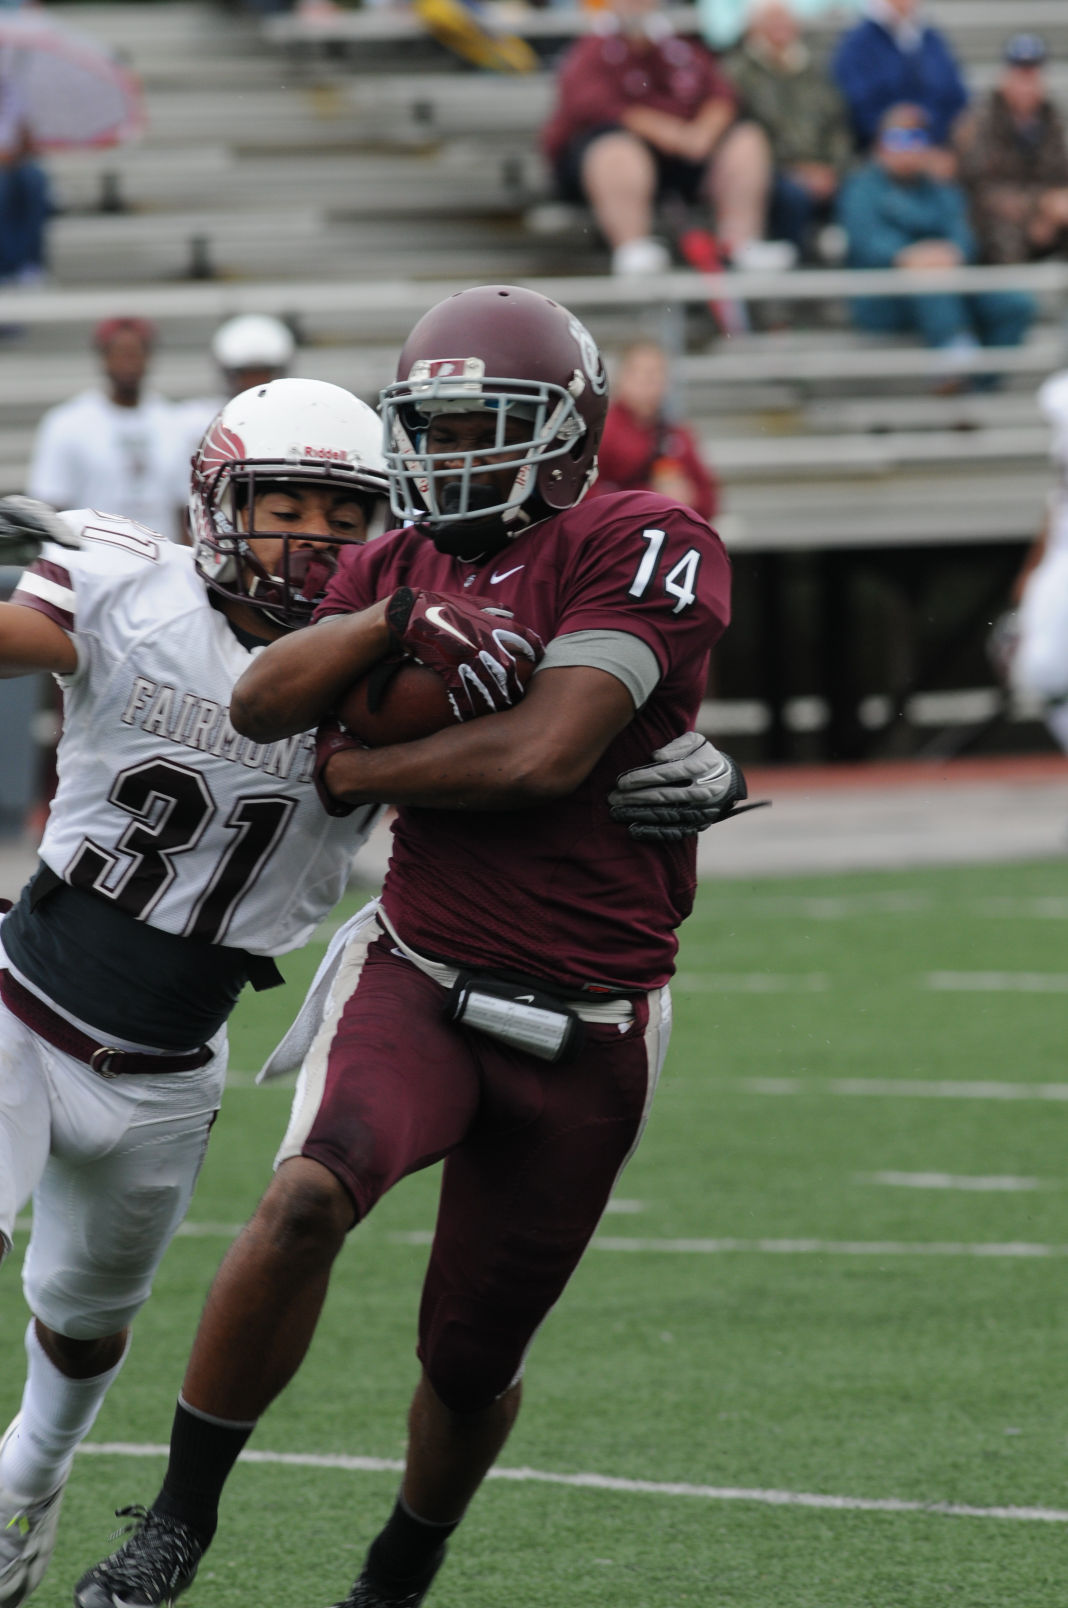 SLIDESHOW: FAIRMONT STATE VS CONCORD UNIVERSITY FOOTBALL ...